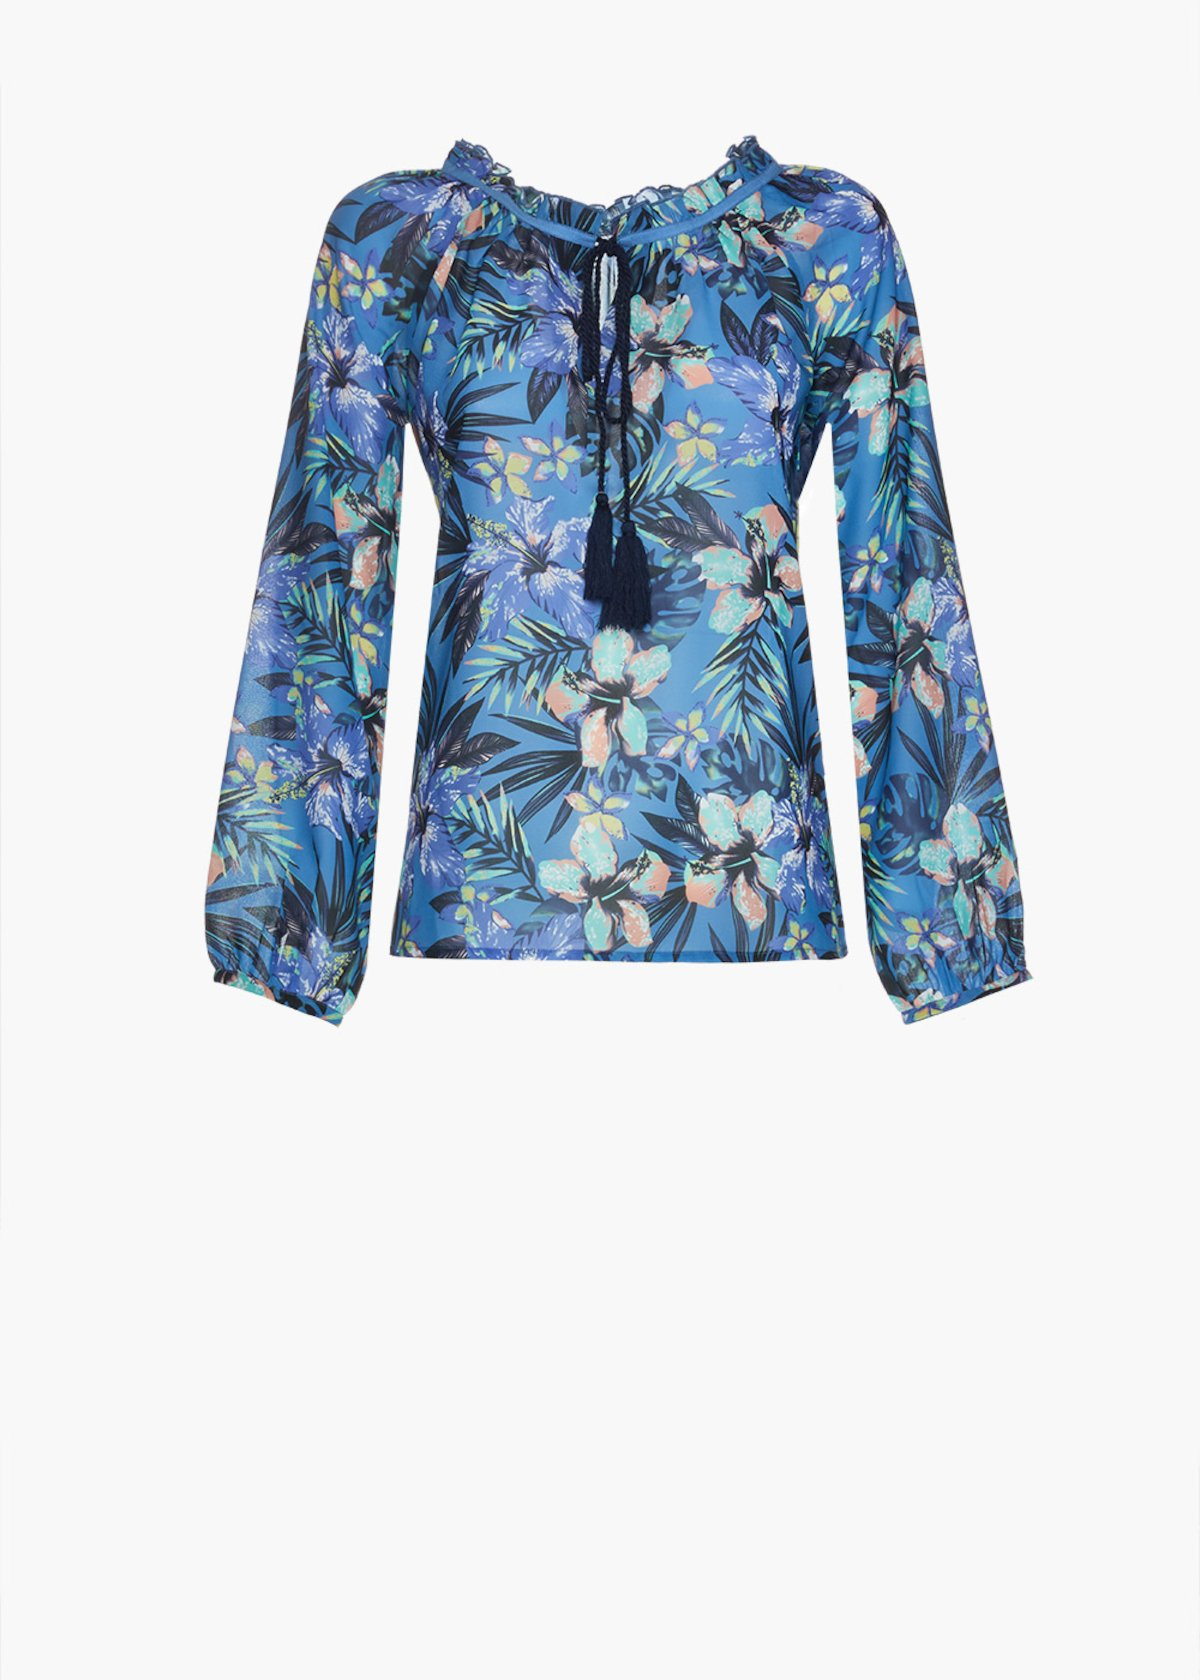 Cleof blouse in georgette flower print with round neckline - Blue / Lilac Fantasia - Woman